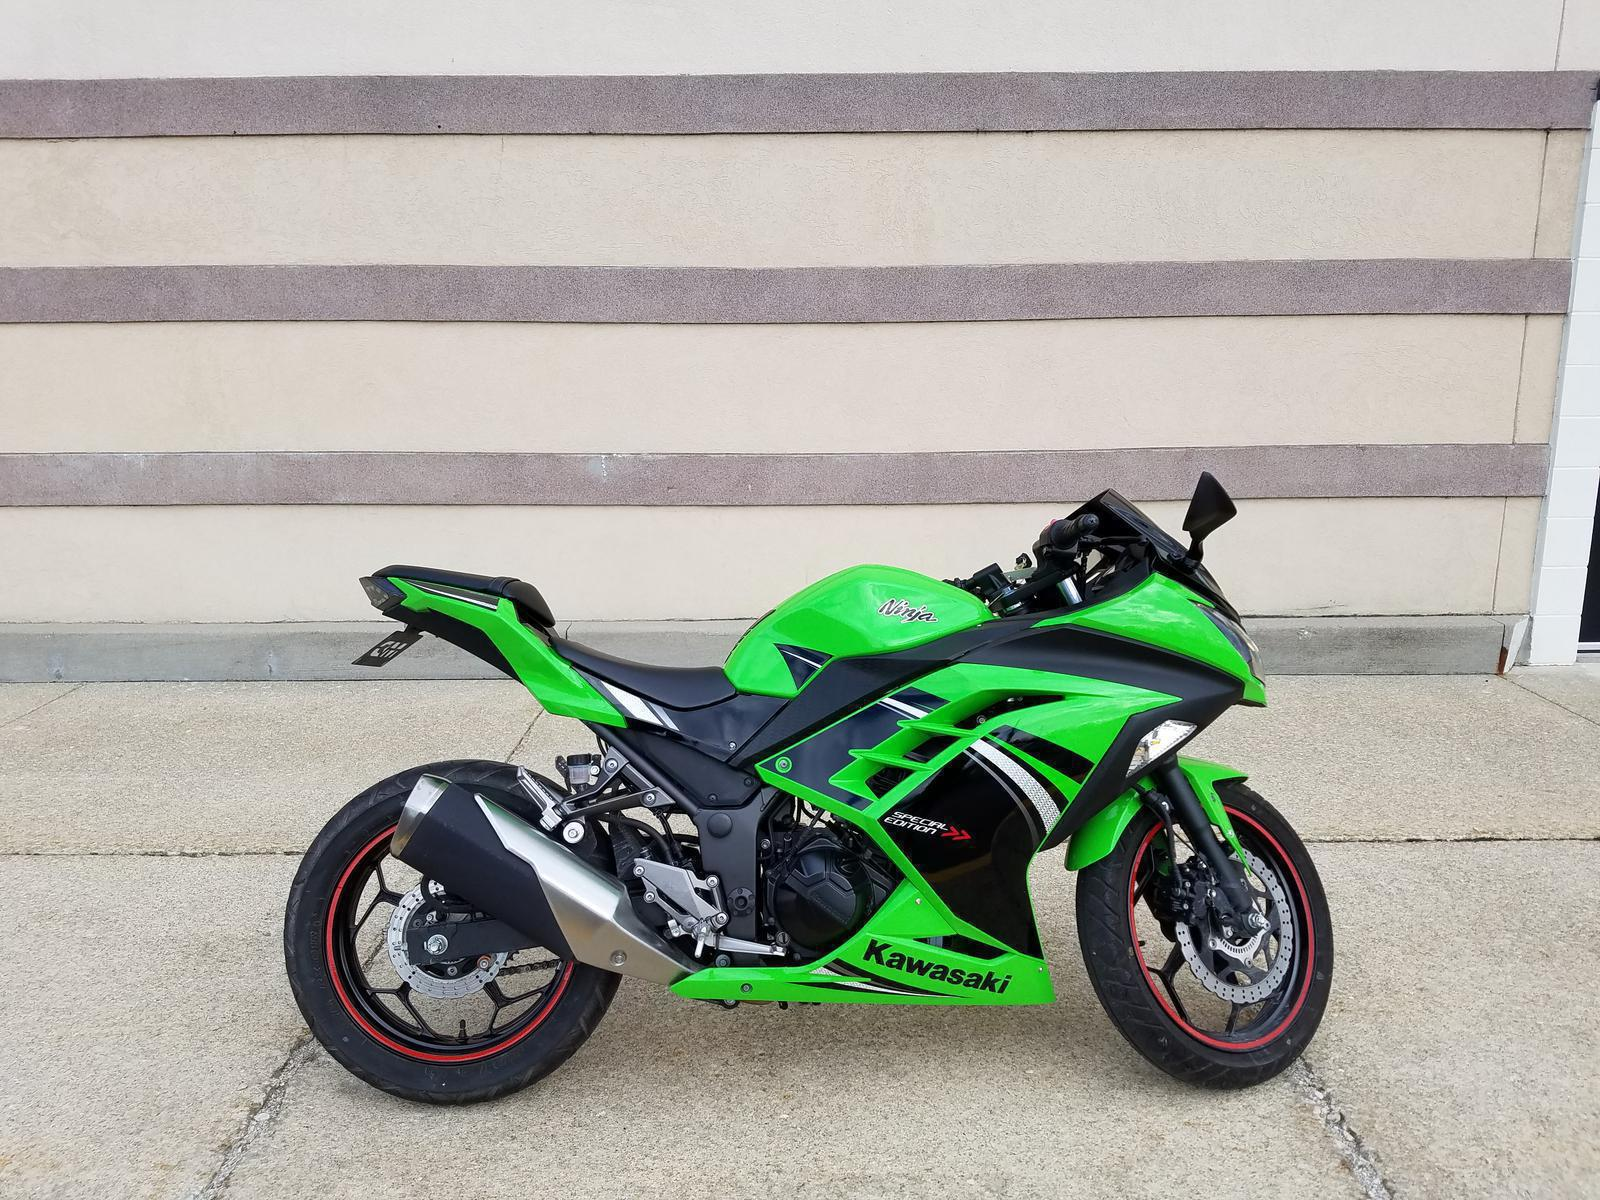 2014 Kawasaki Ninja 300 Abs Se For Sale In Westerville Oh Pony